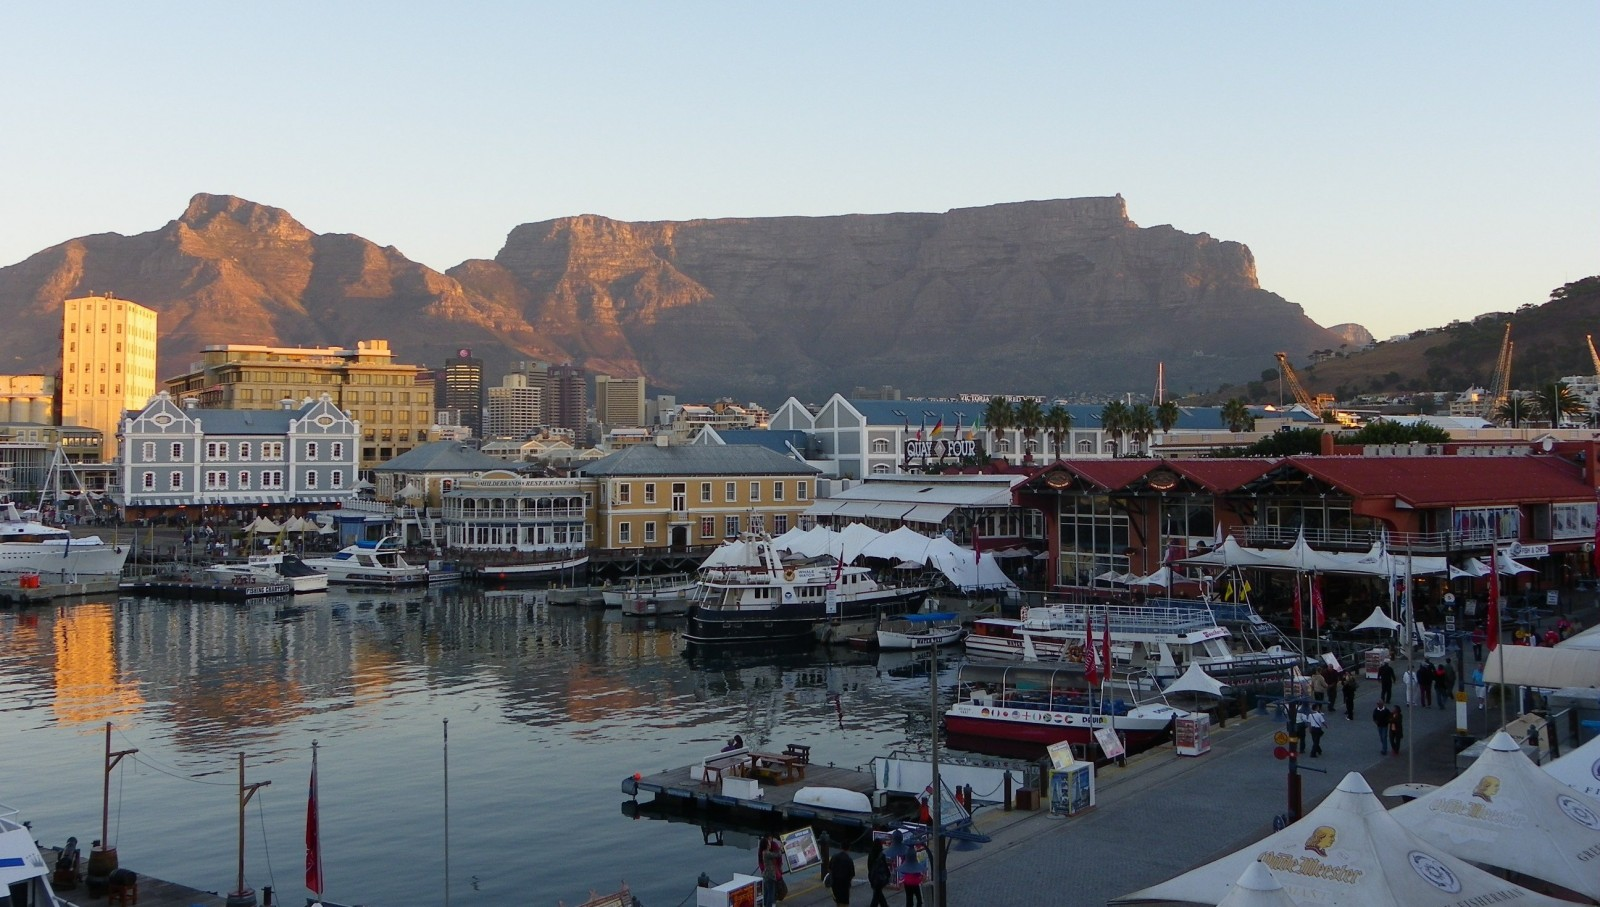 Cape-Town-Waterfront-3-e1442143792517